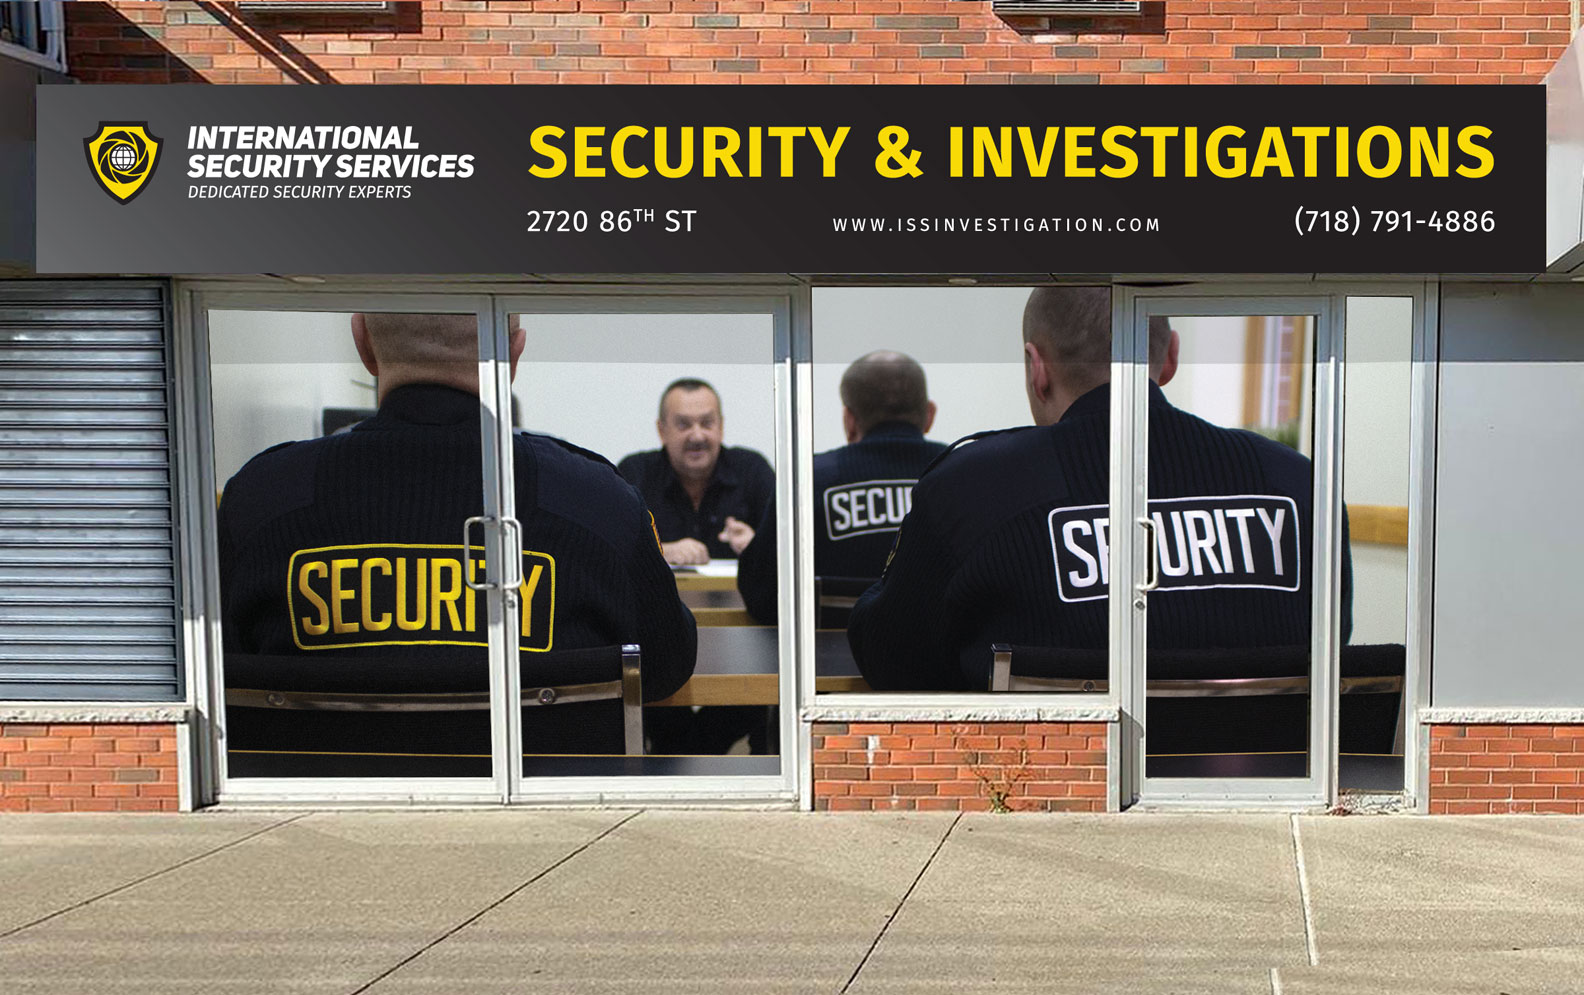 International Security Services, Inc. announces shifting of its head office to a new location